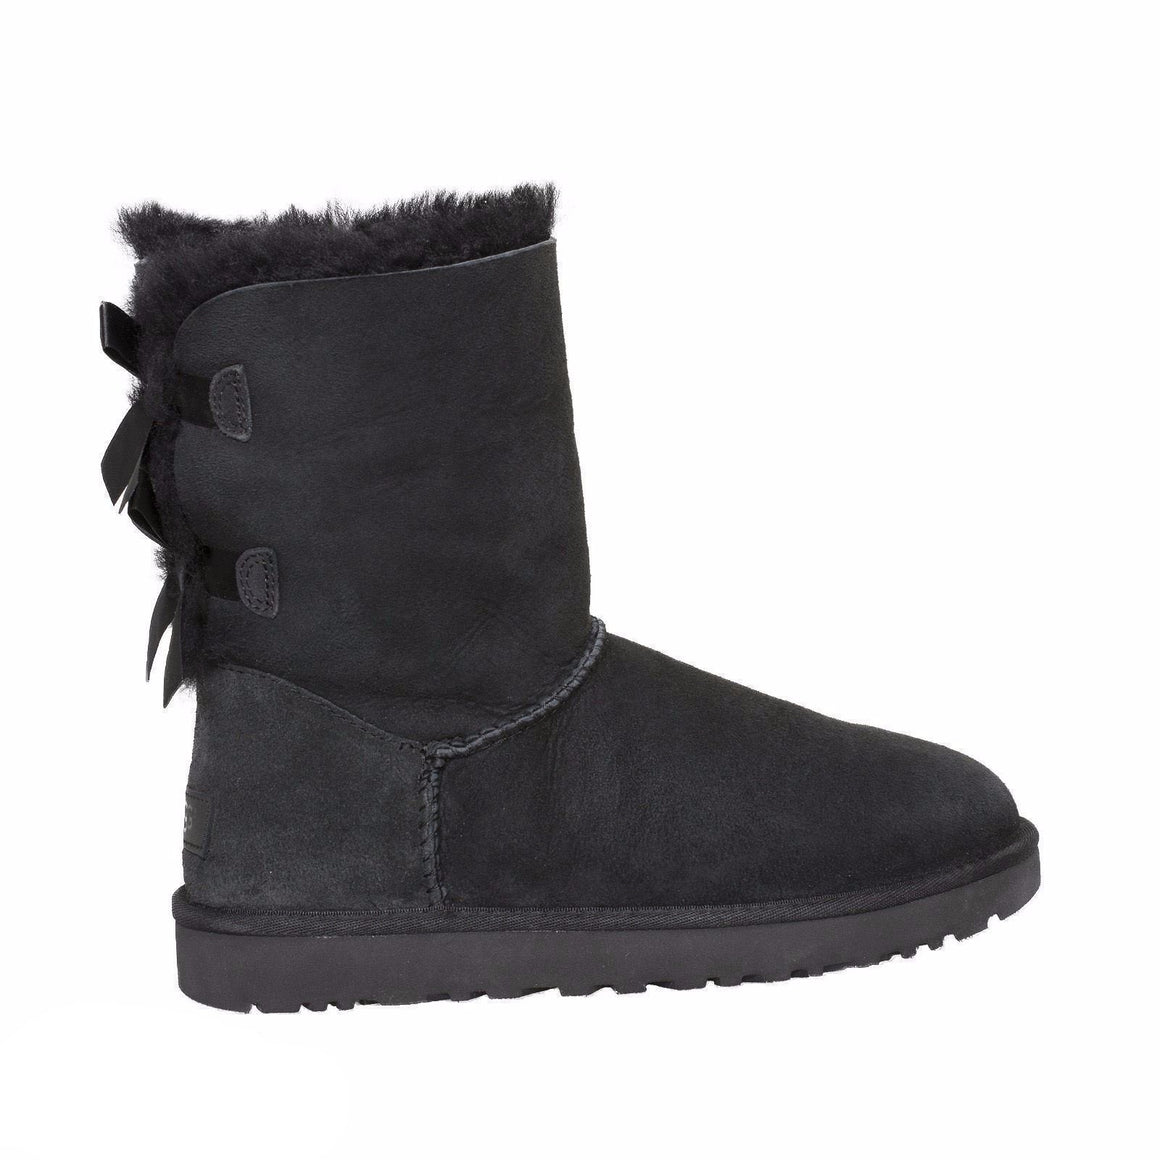 UGG Bailey Bow II Black Boots - Youth